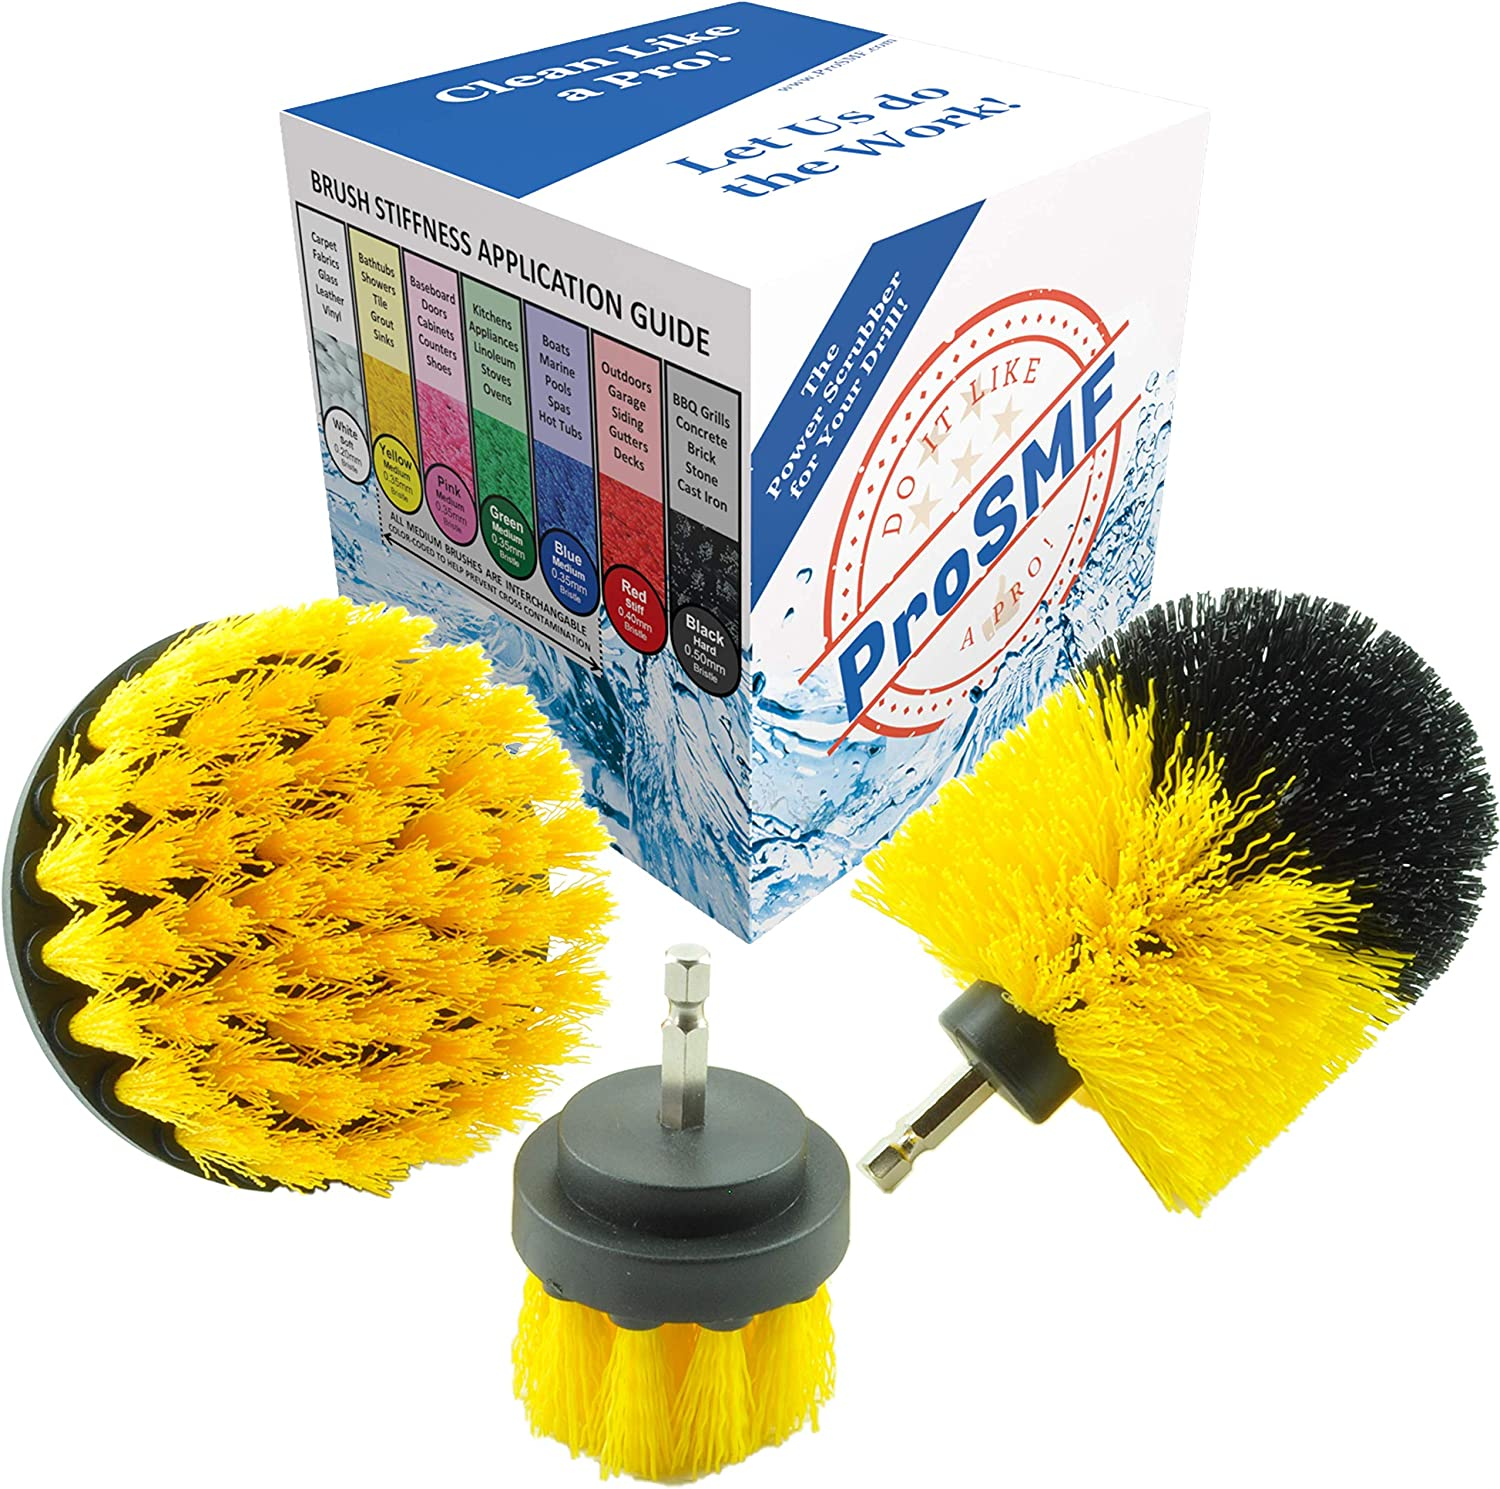 ProSMF New popularity Drill Brush - Ranking TOP17 All Power Scrubber Dril Cleaner Purpose